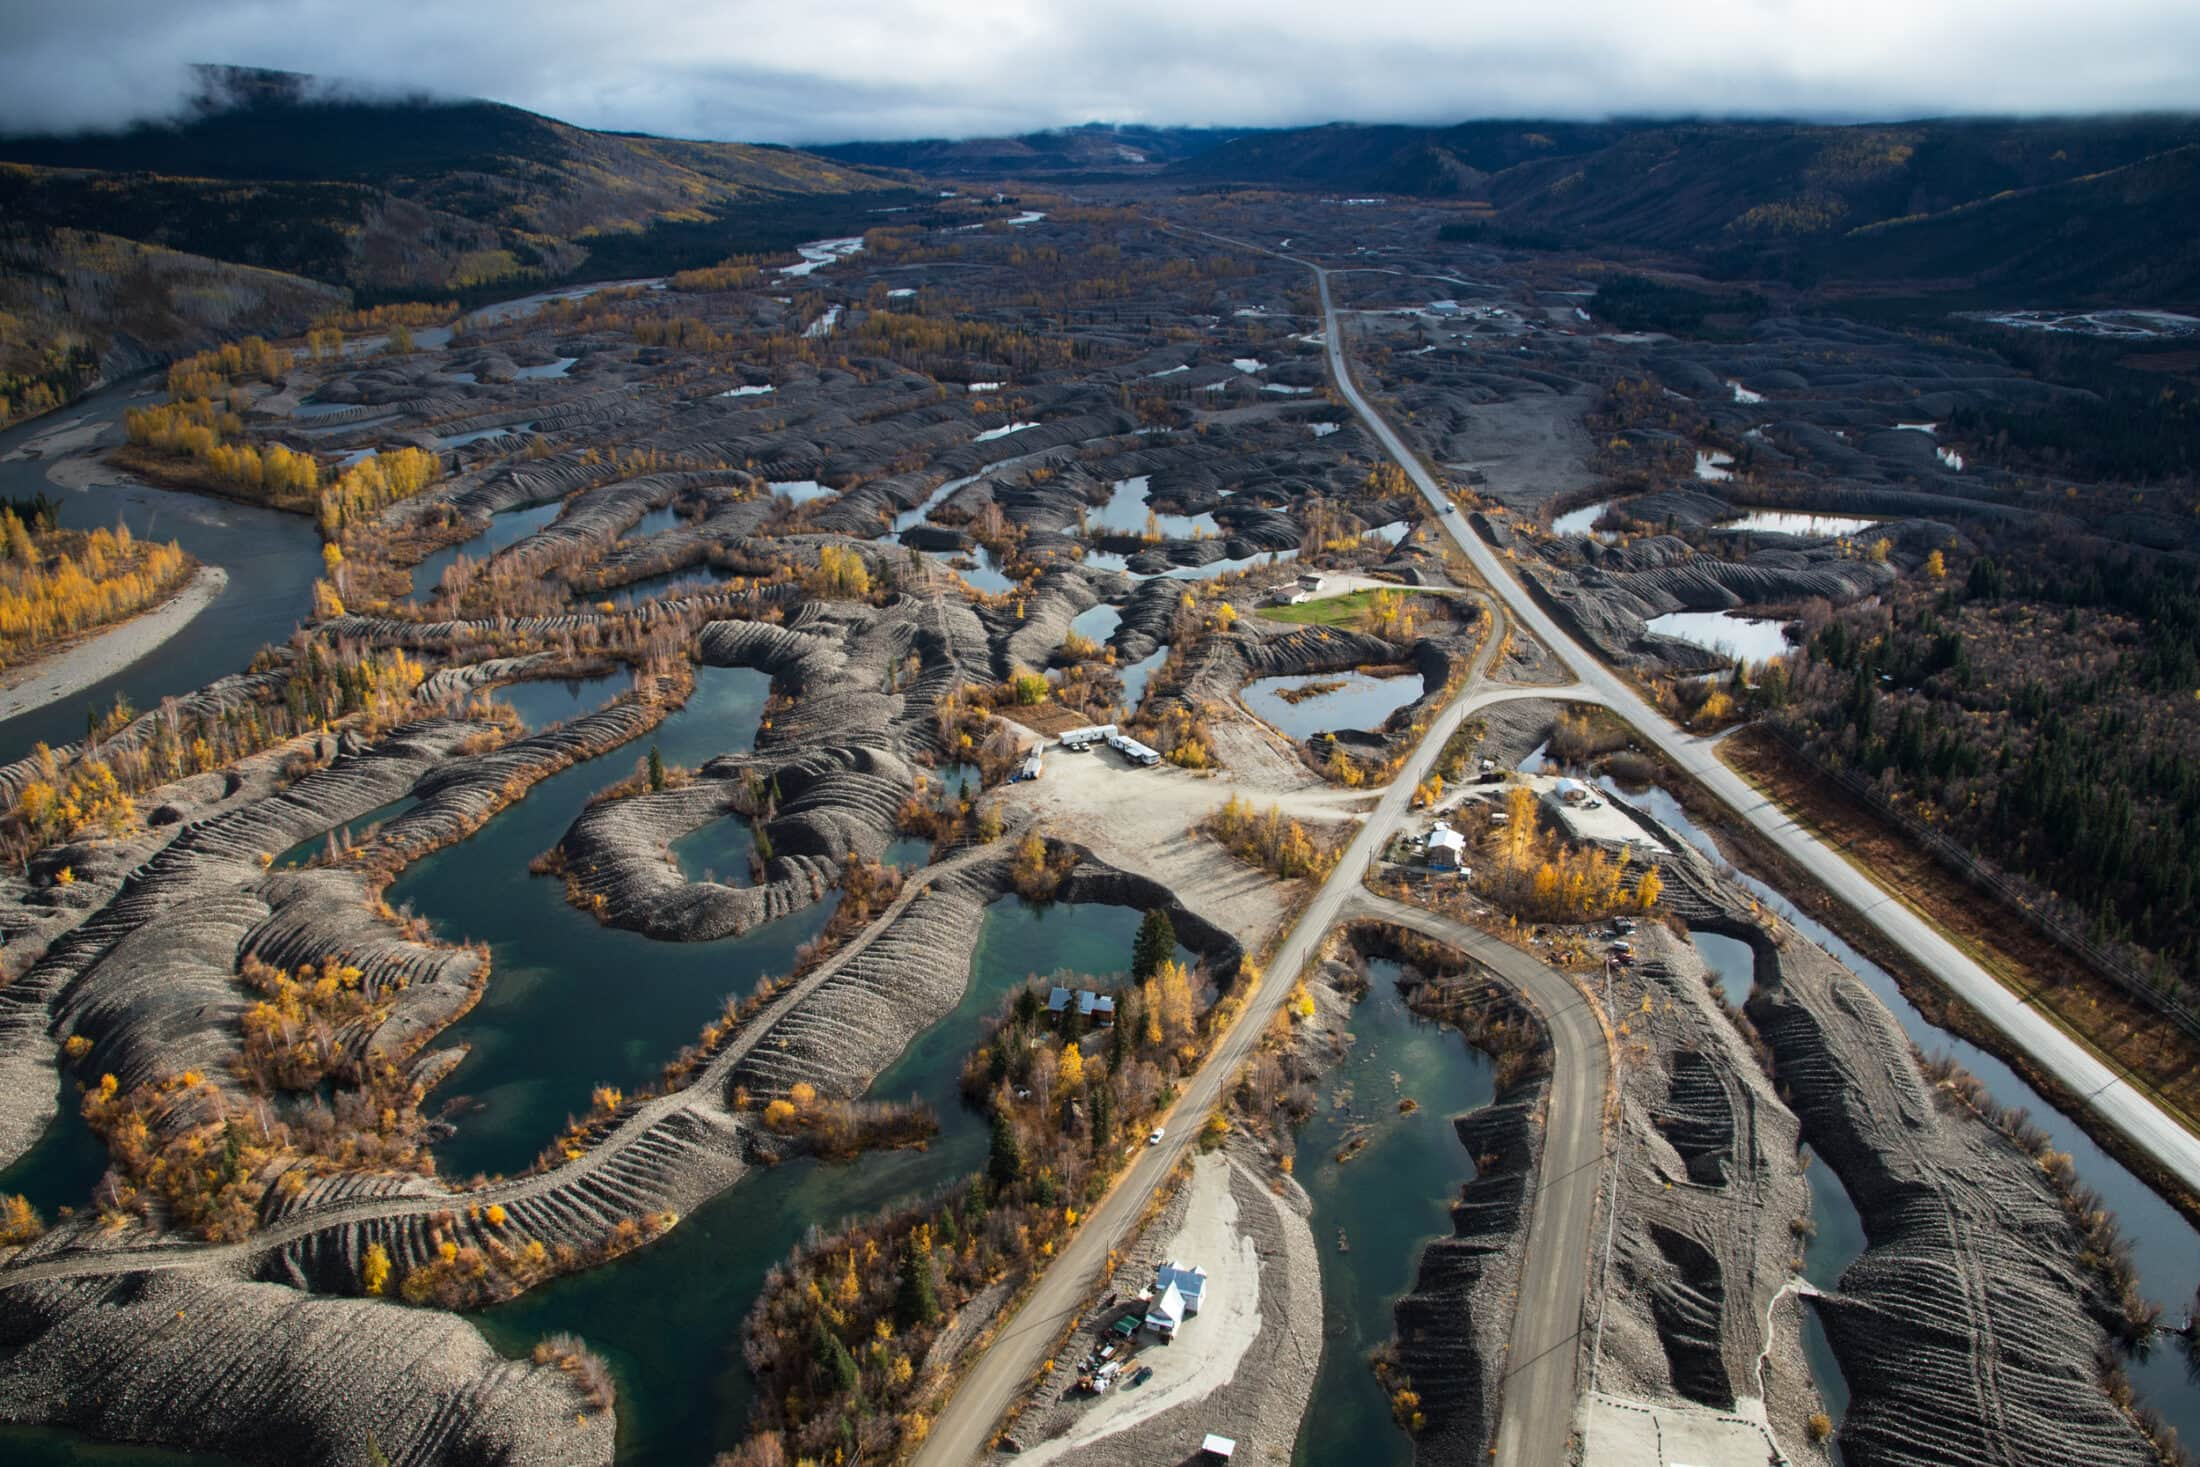 Placer mining Klondike River Dawson City Yukon Peter Mather